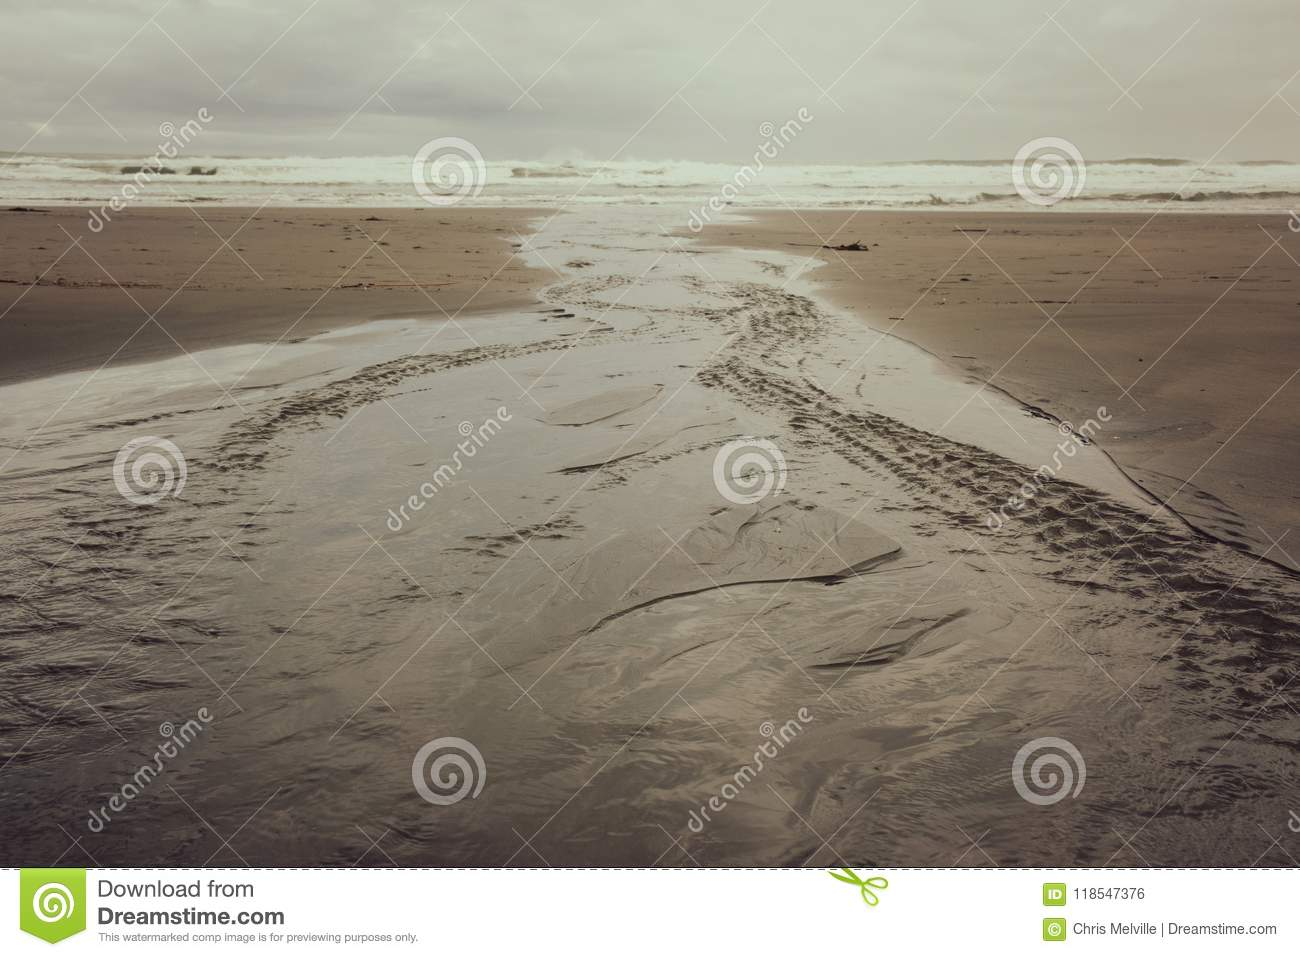 A Flat Meandering River leads down the Beach